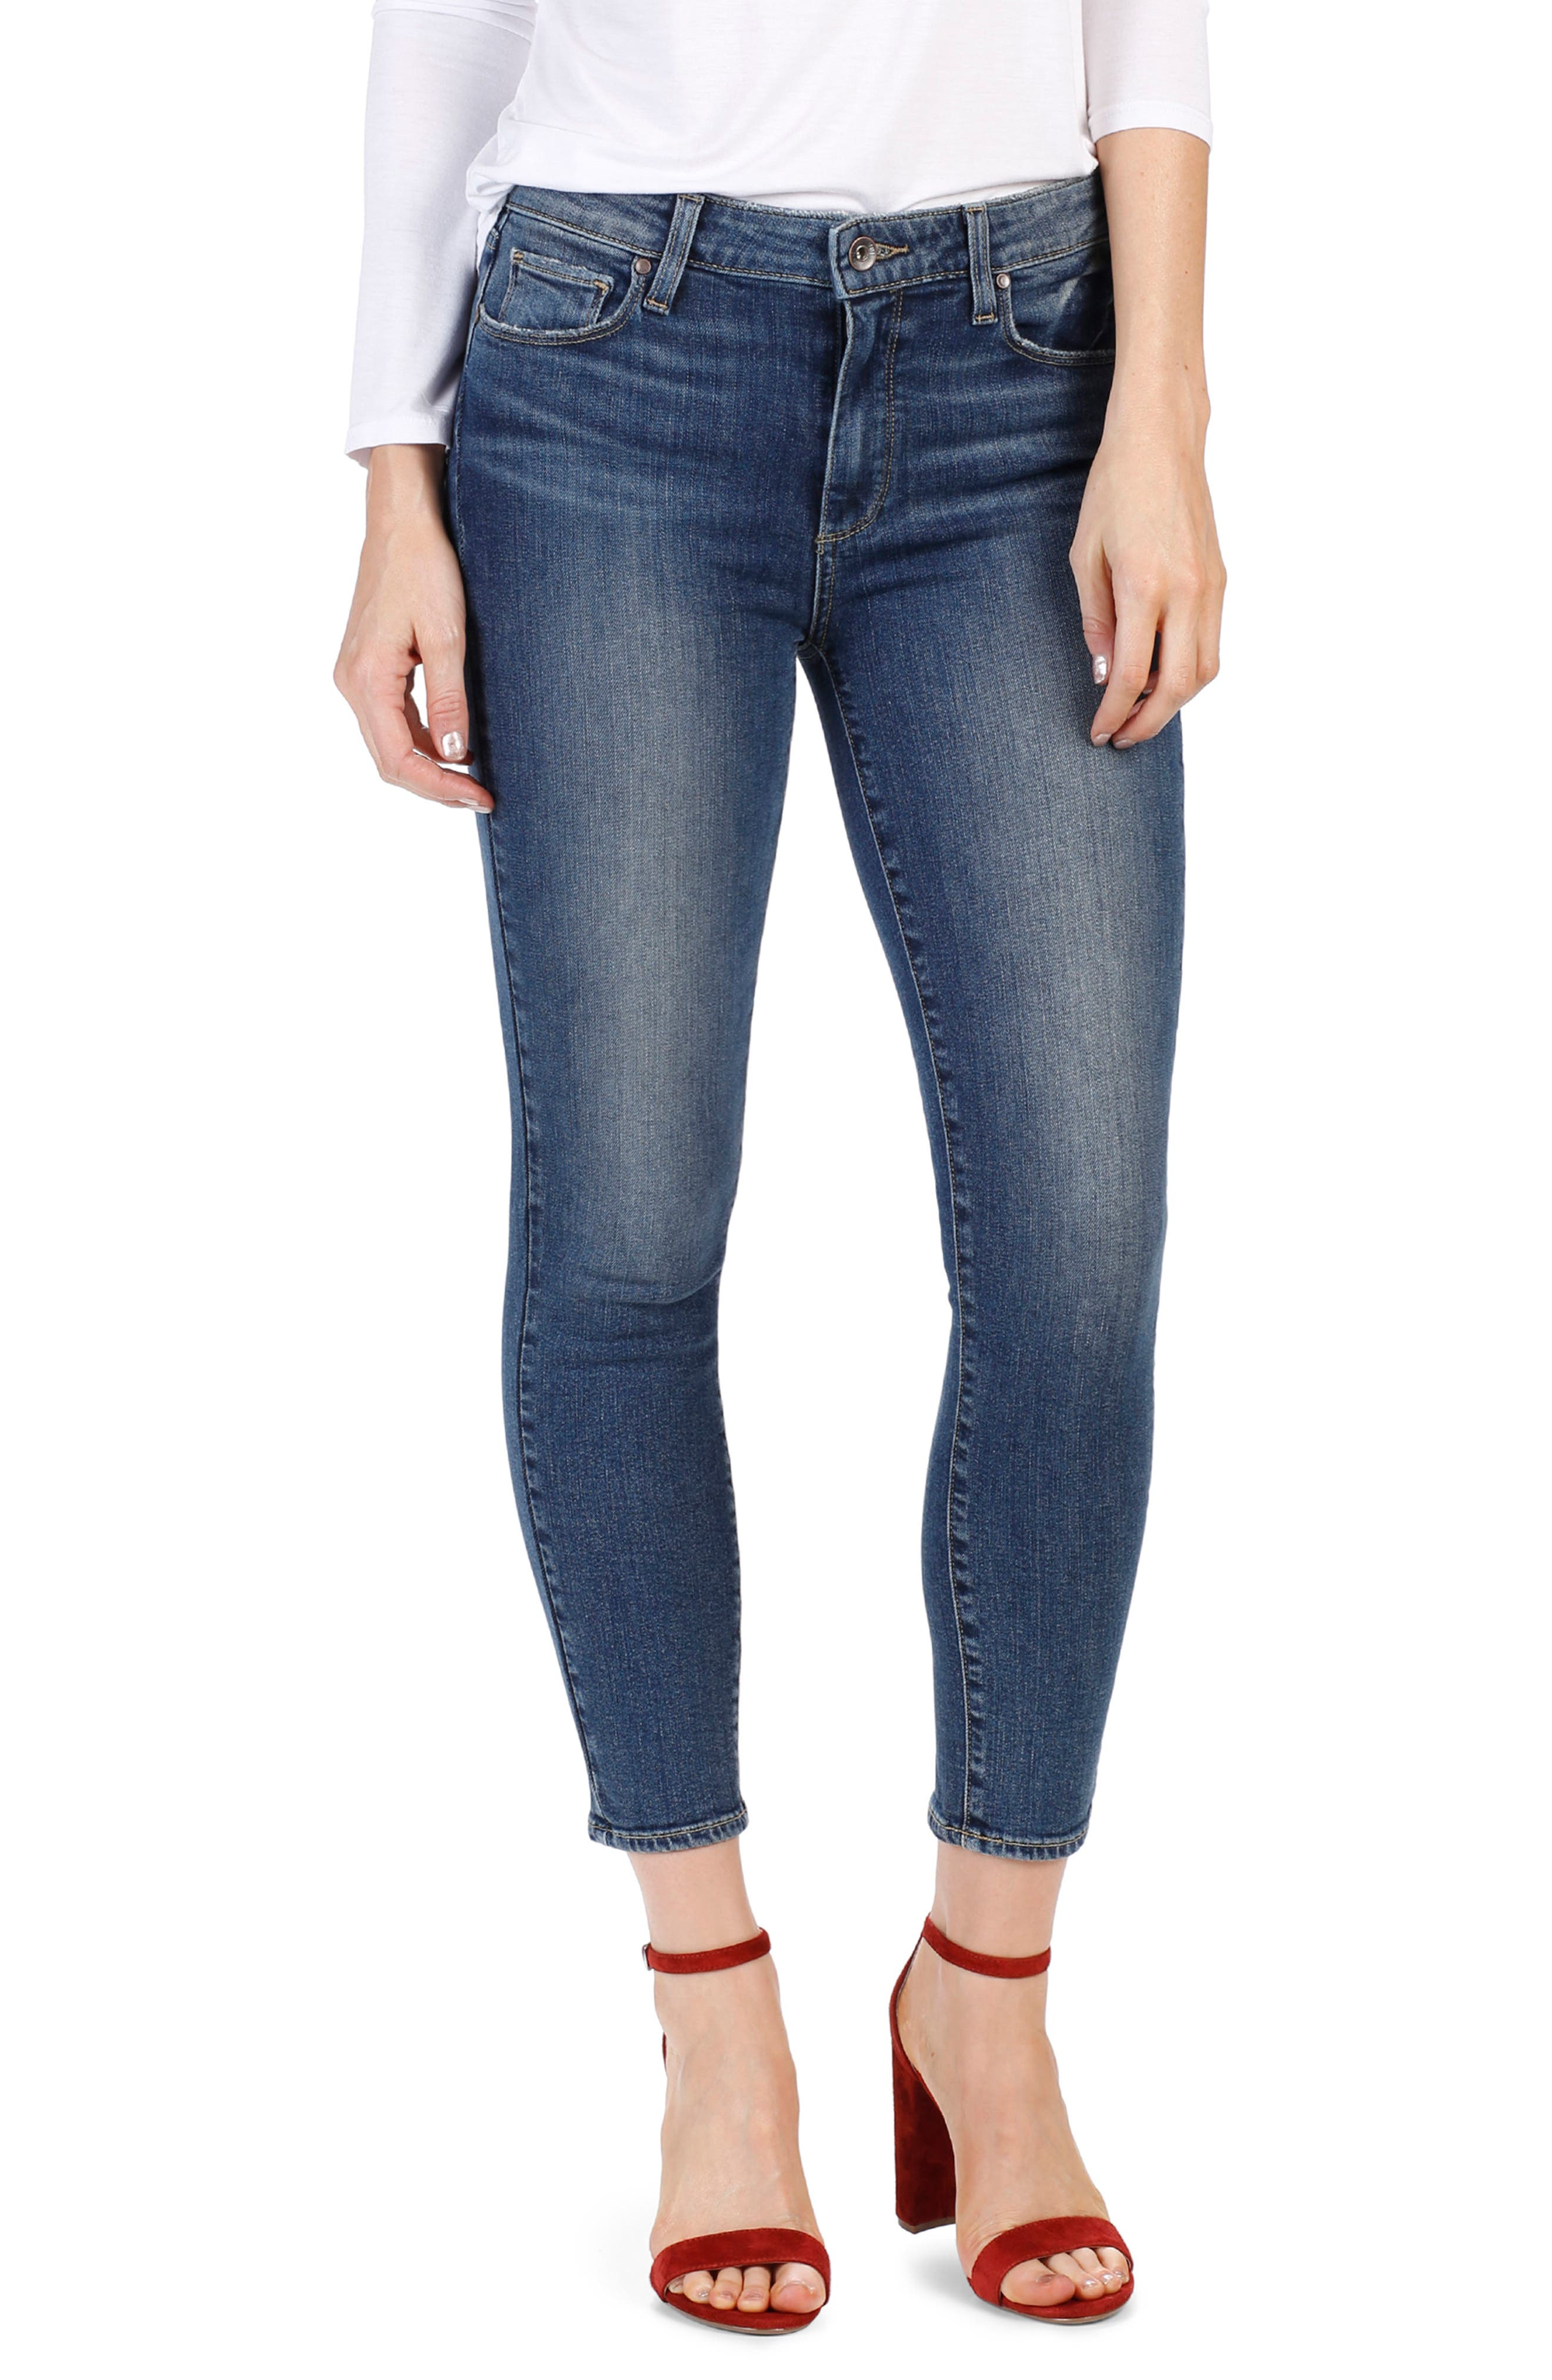 Hoxton High Waist Crop Skinny Jeans,                         Main,                         color, Luca